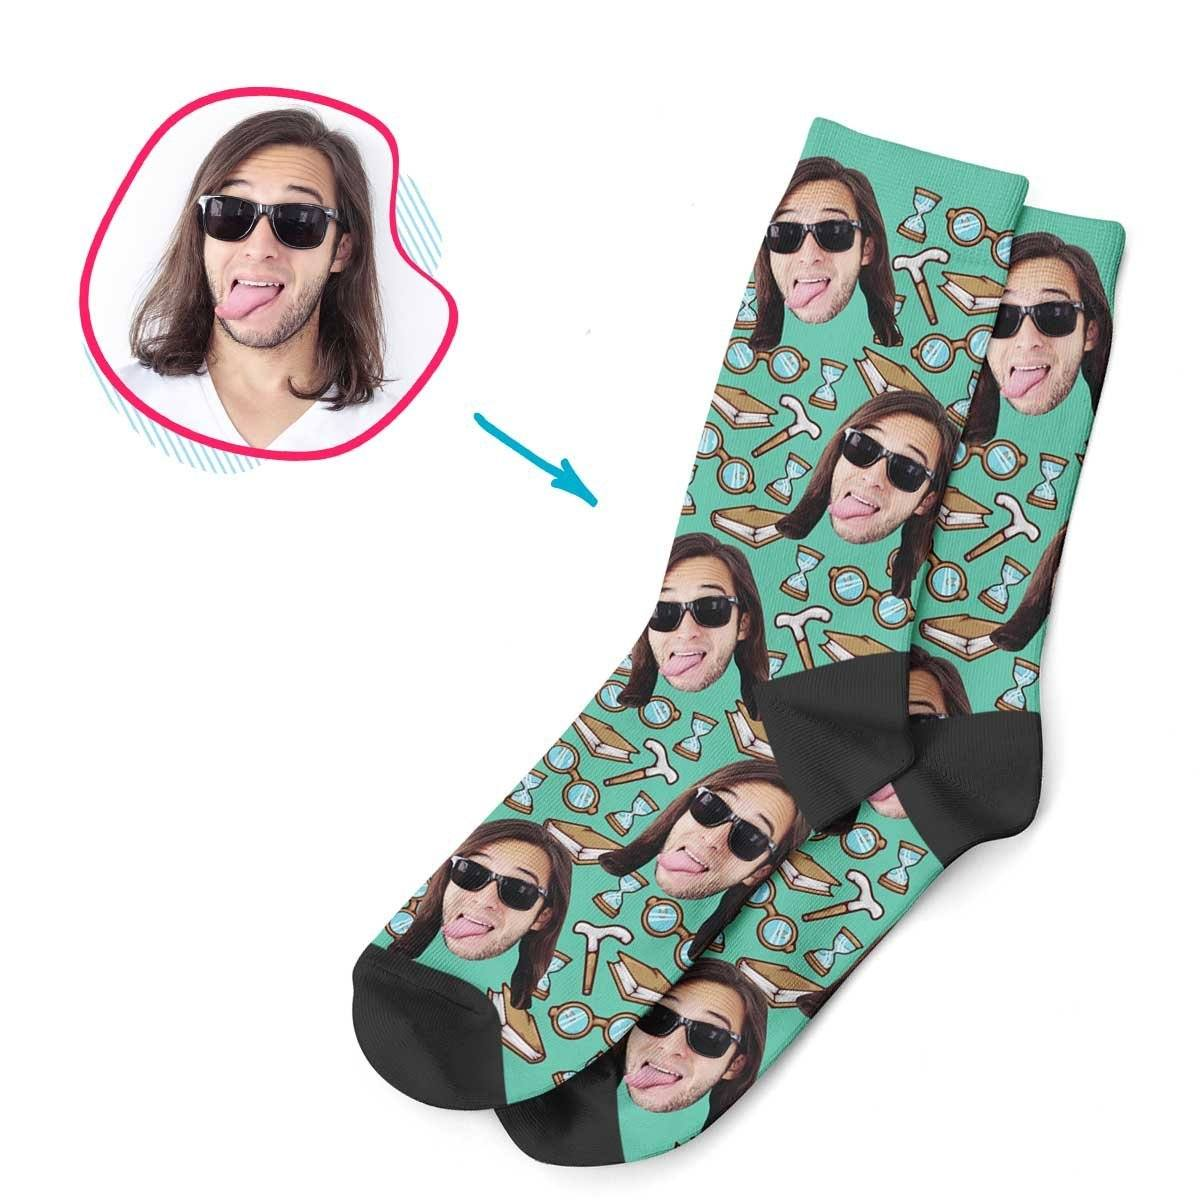 Mint Retirement personalized socks with photo of face printed on them